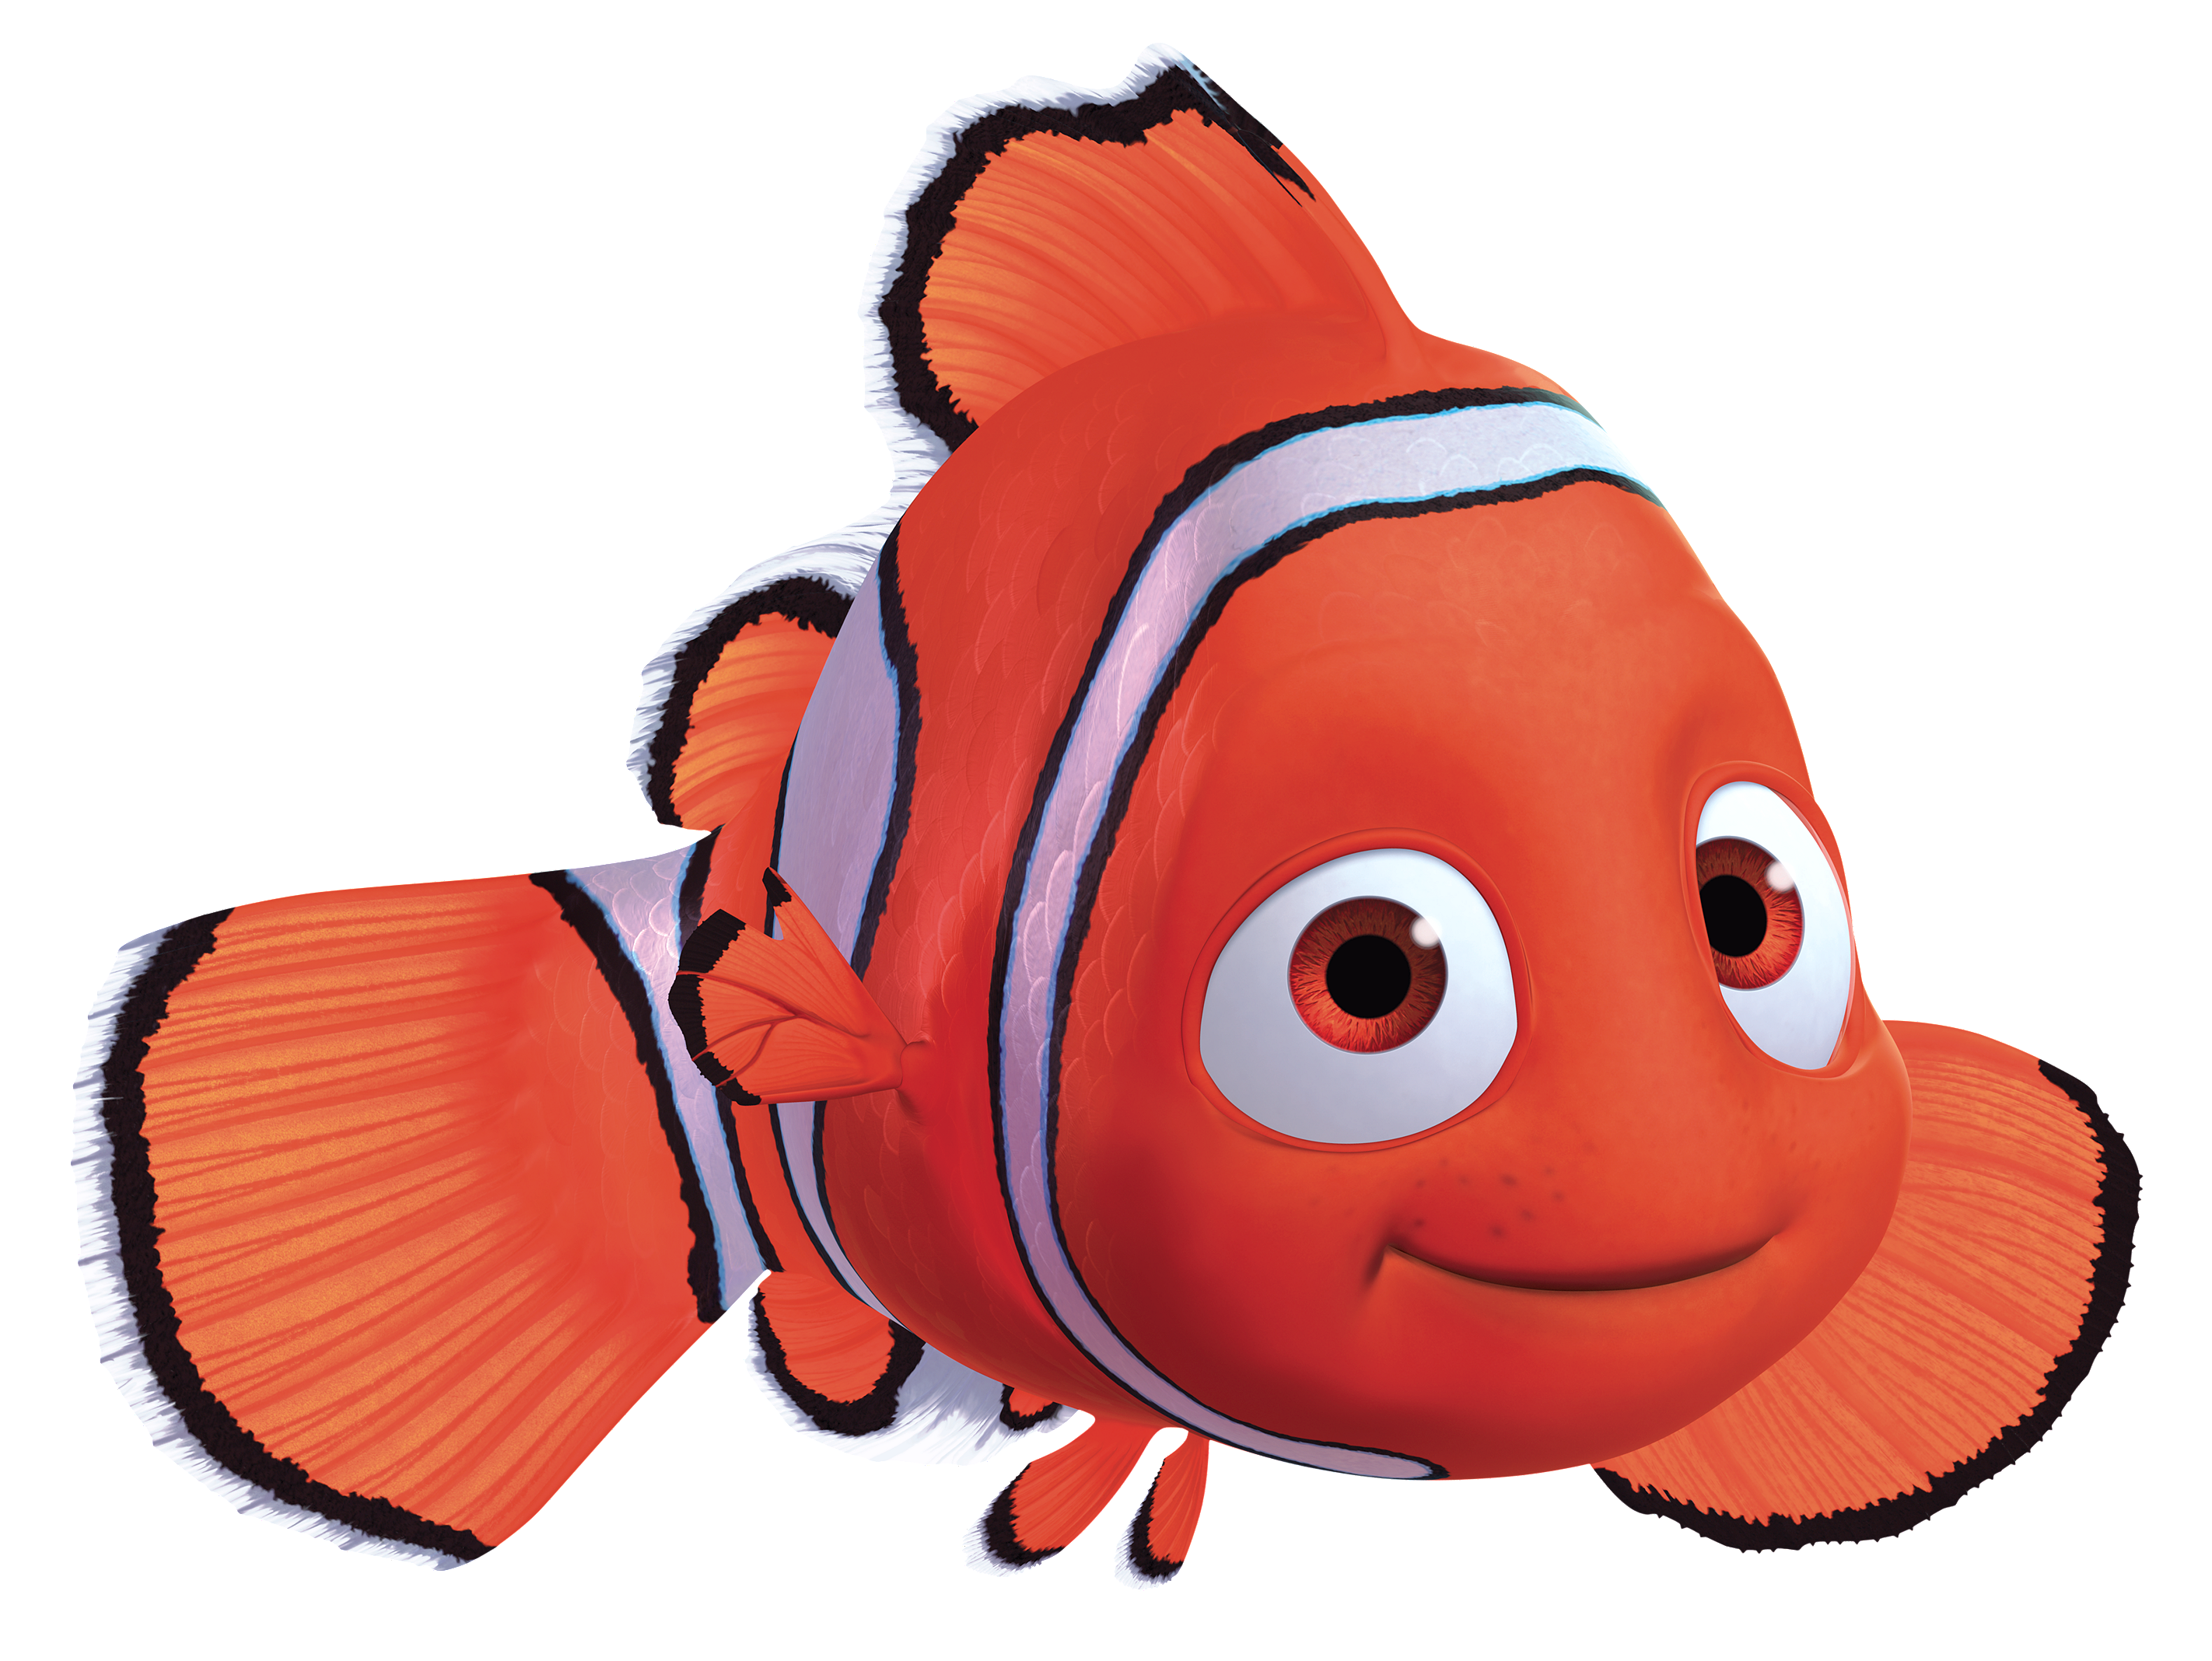 Finding Nemo Characters Dory Clipart Free Clip Art Images in.